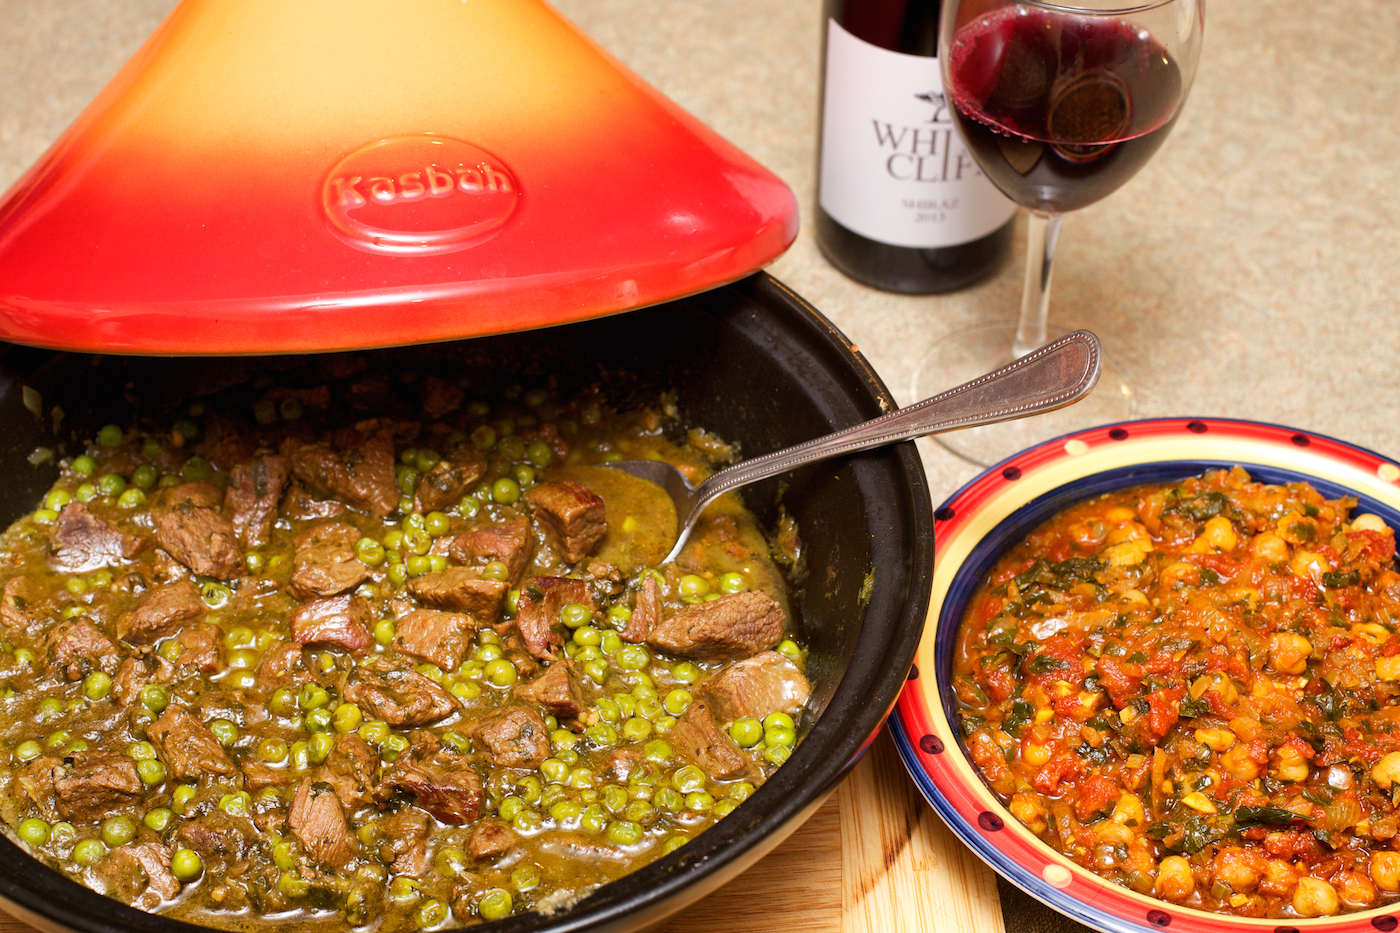 Lamb Tagine with Peas and Lemons served with a Tagine of Chickpeas